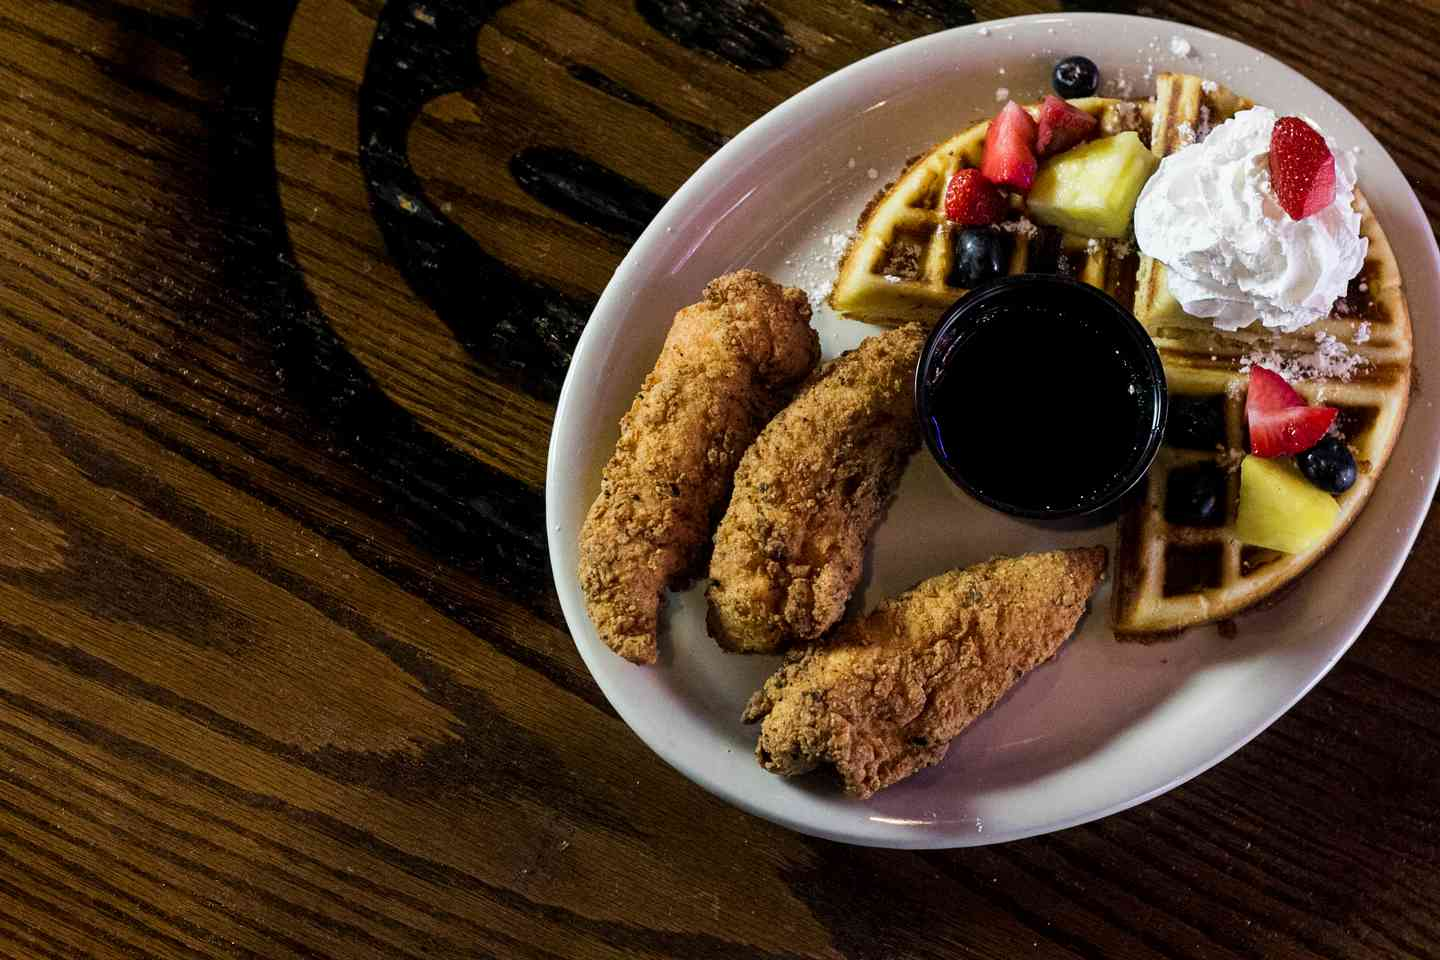 Grata Chicken and Waffles